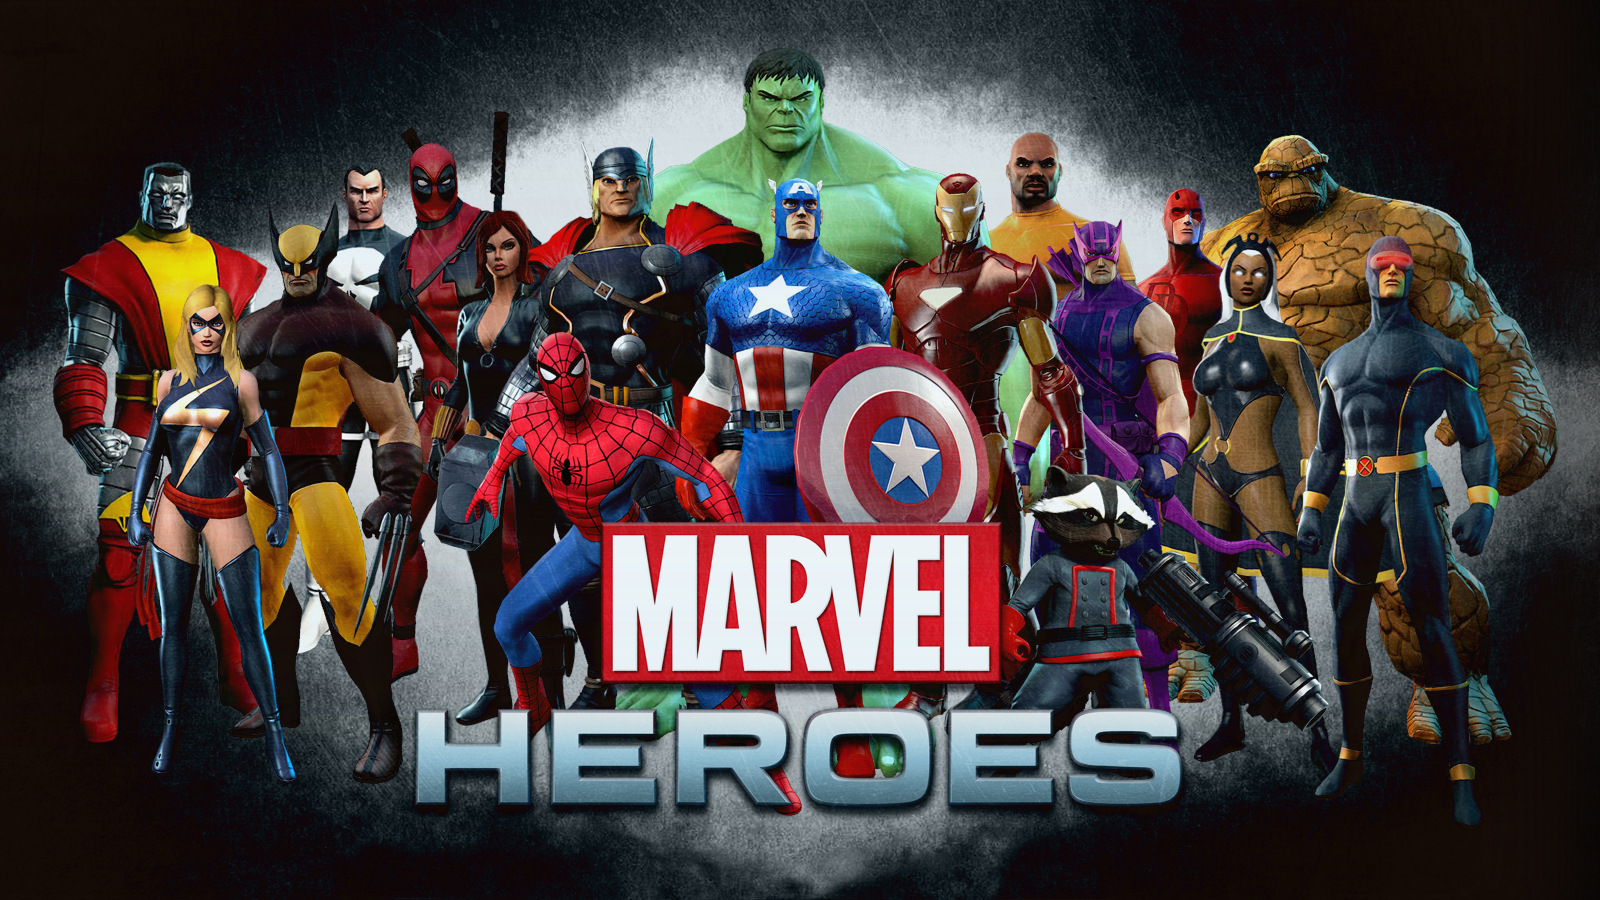 Marvel heroes wallpaper by squiddytron